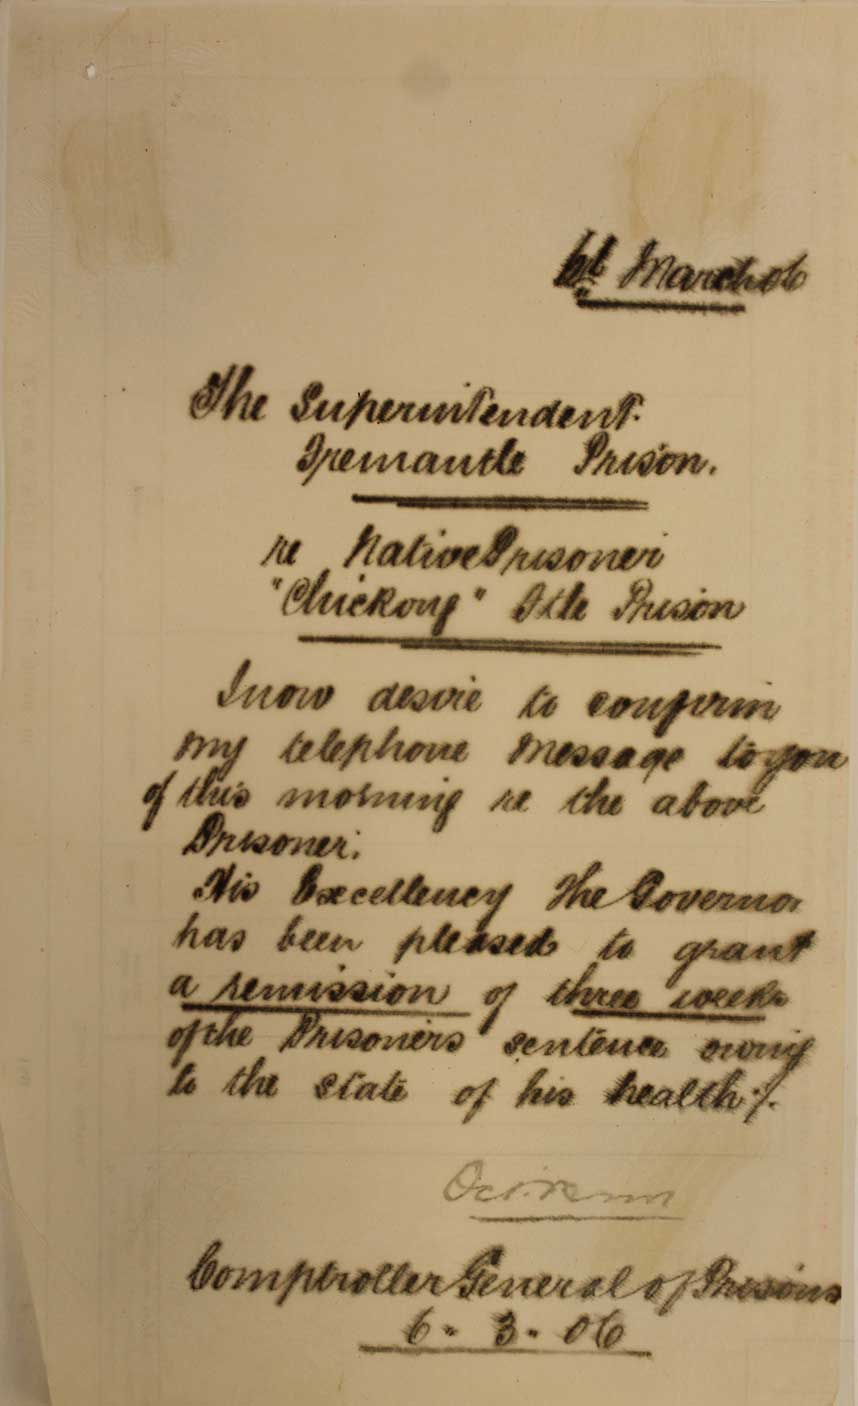 Gaols Department correspondance showing Chickong's Remission of sentence, 1905